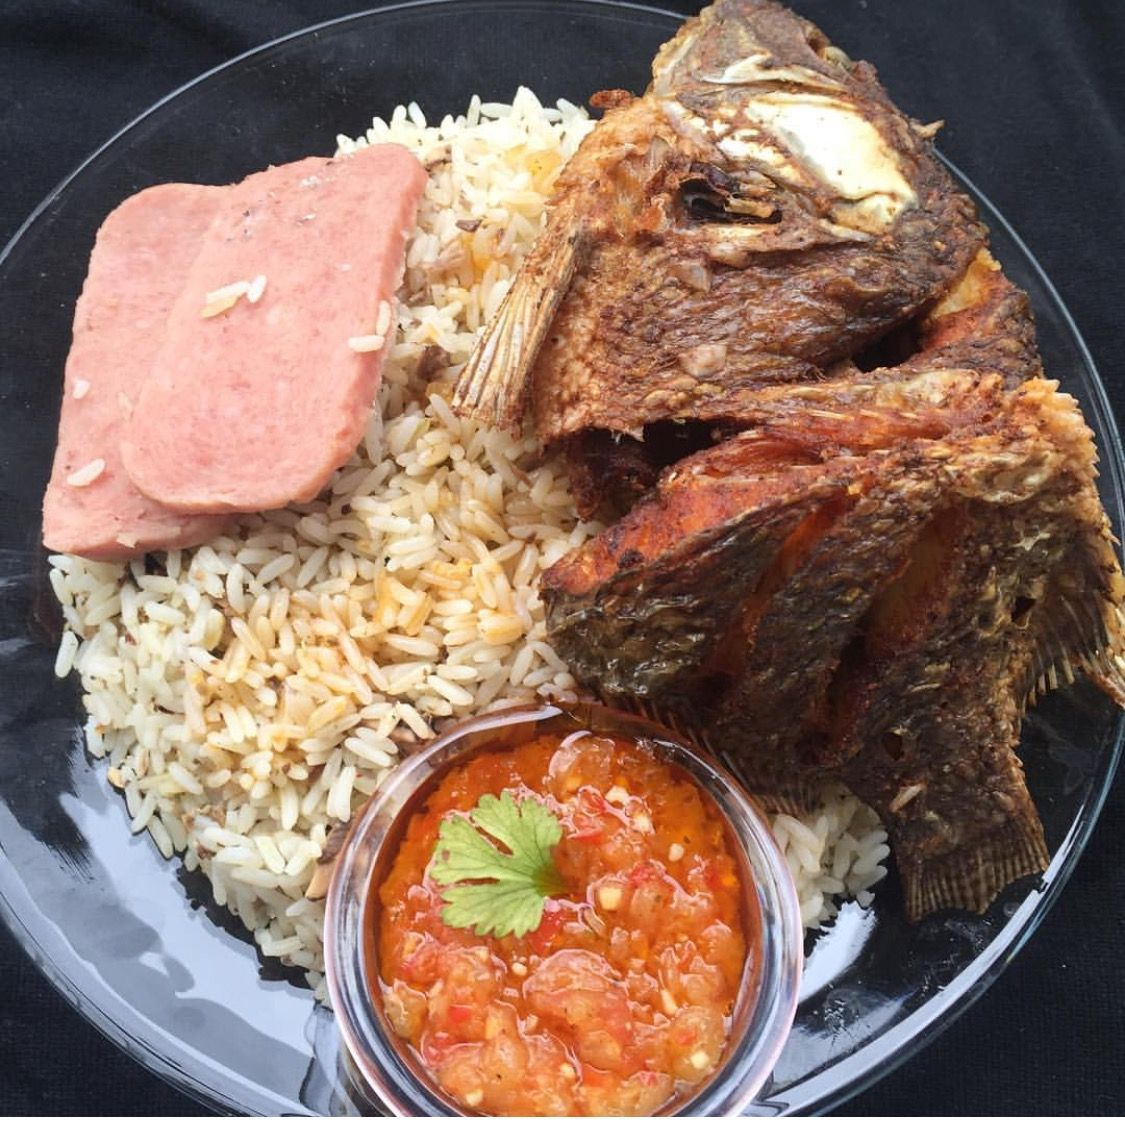 Dry rice fry fish boiled luncheon meat liberian food ibeethechef dry rice fry fish boiled luncheon meat liberian food ibeethechef forumfinder Gallery